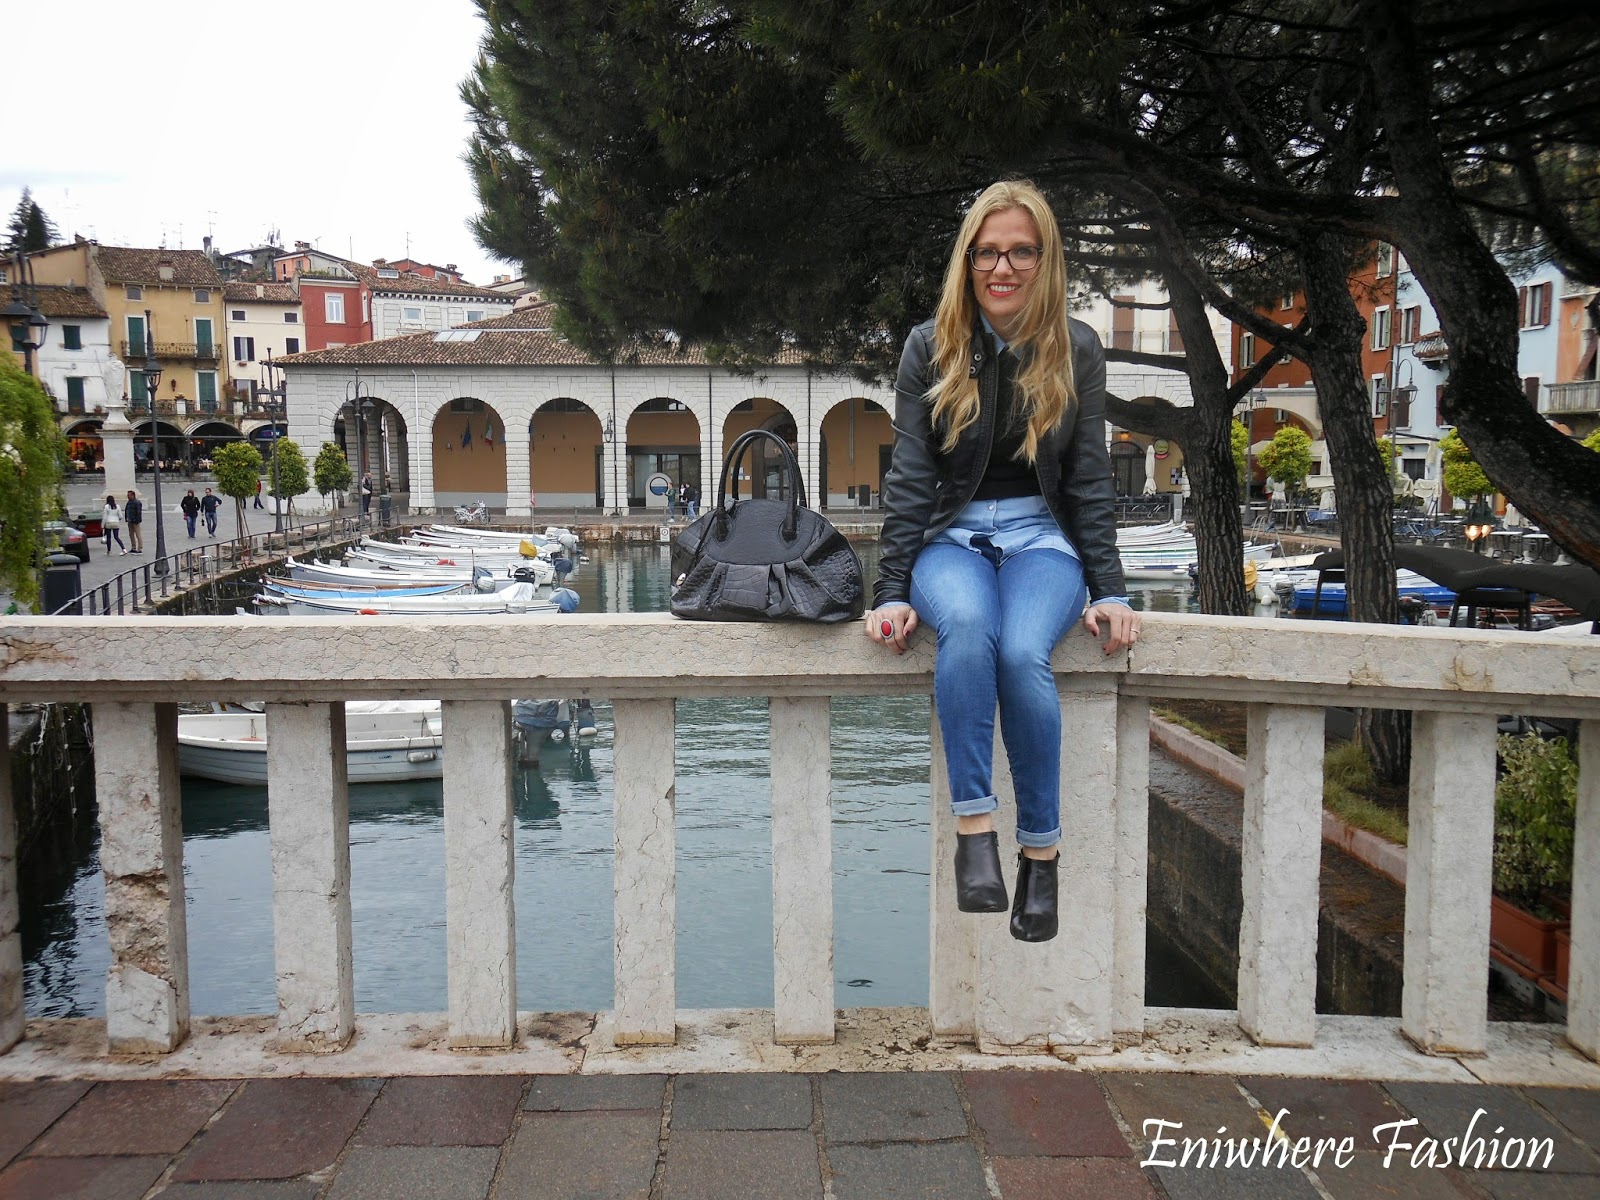 Eniwhere Fashion - Jeans Gas a Desenzano del Garda